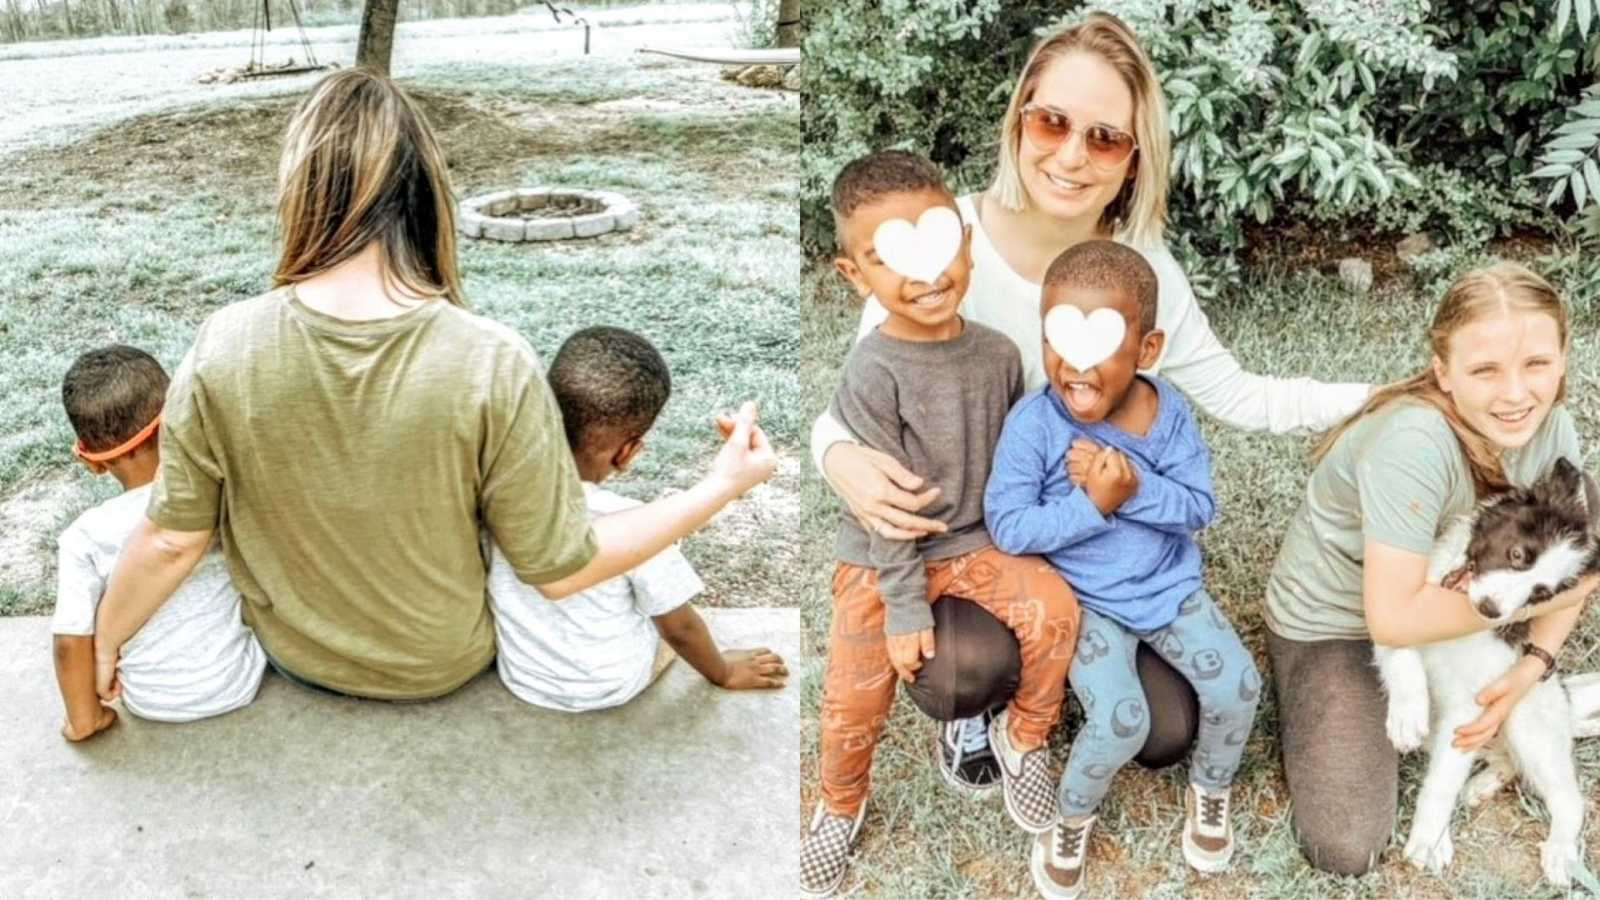 Foster mom takes photos with her foster sons and adopted daughter in their backyard